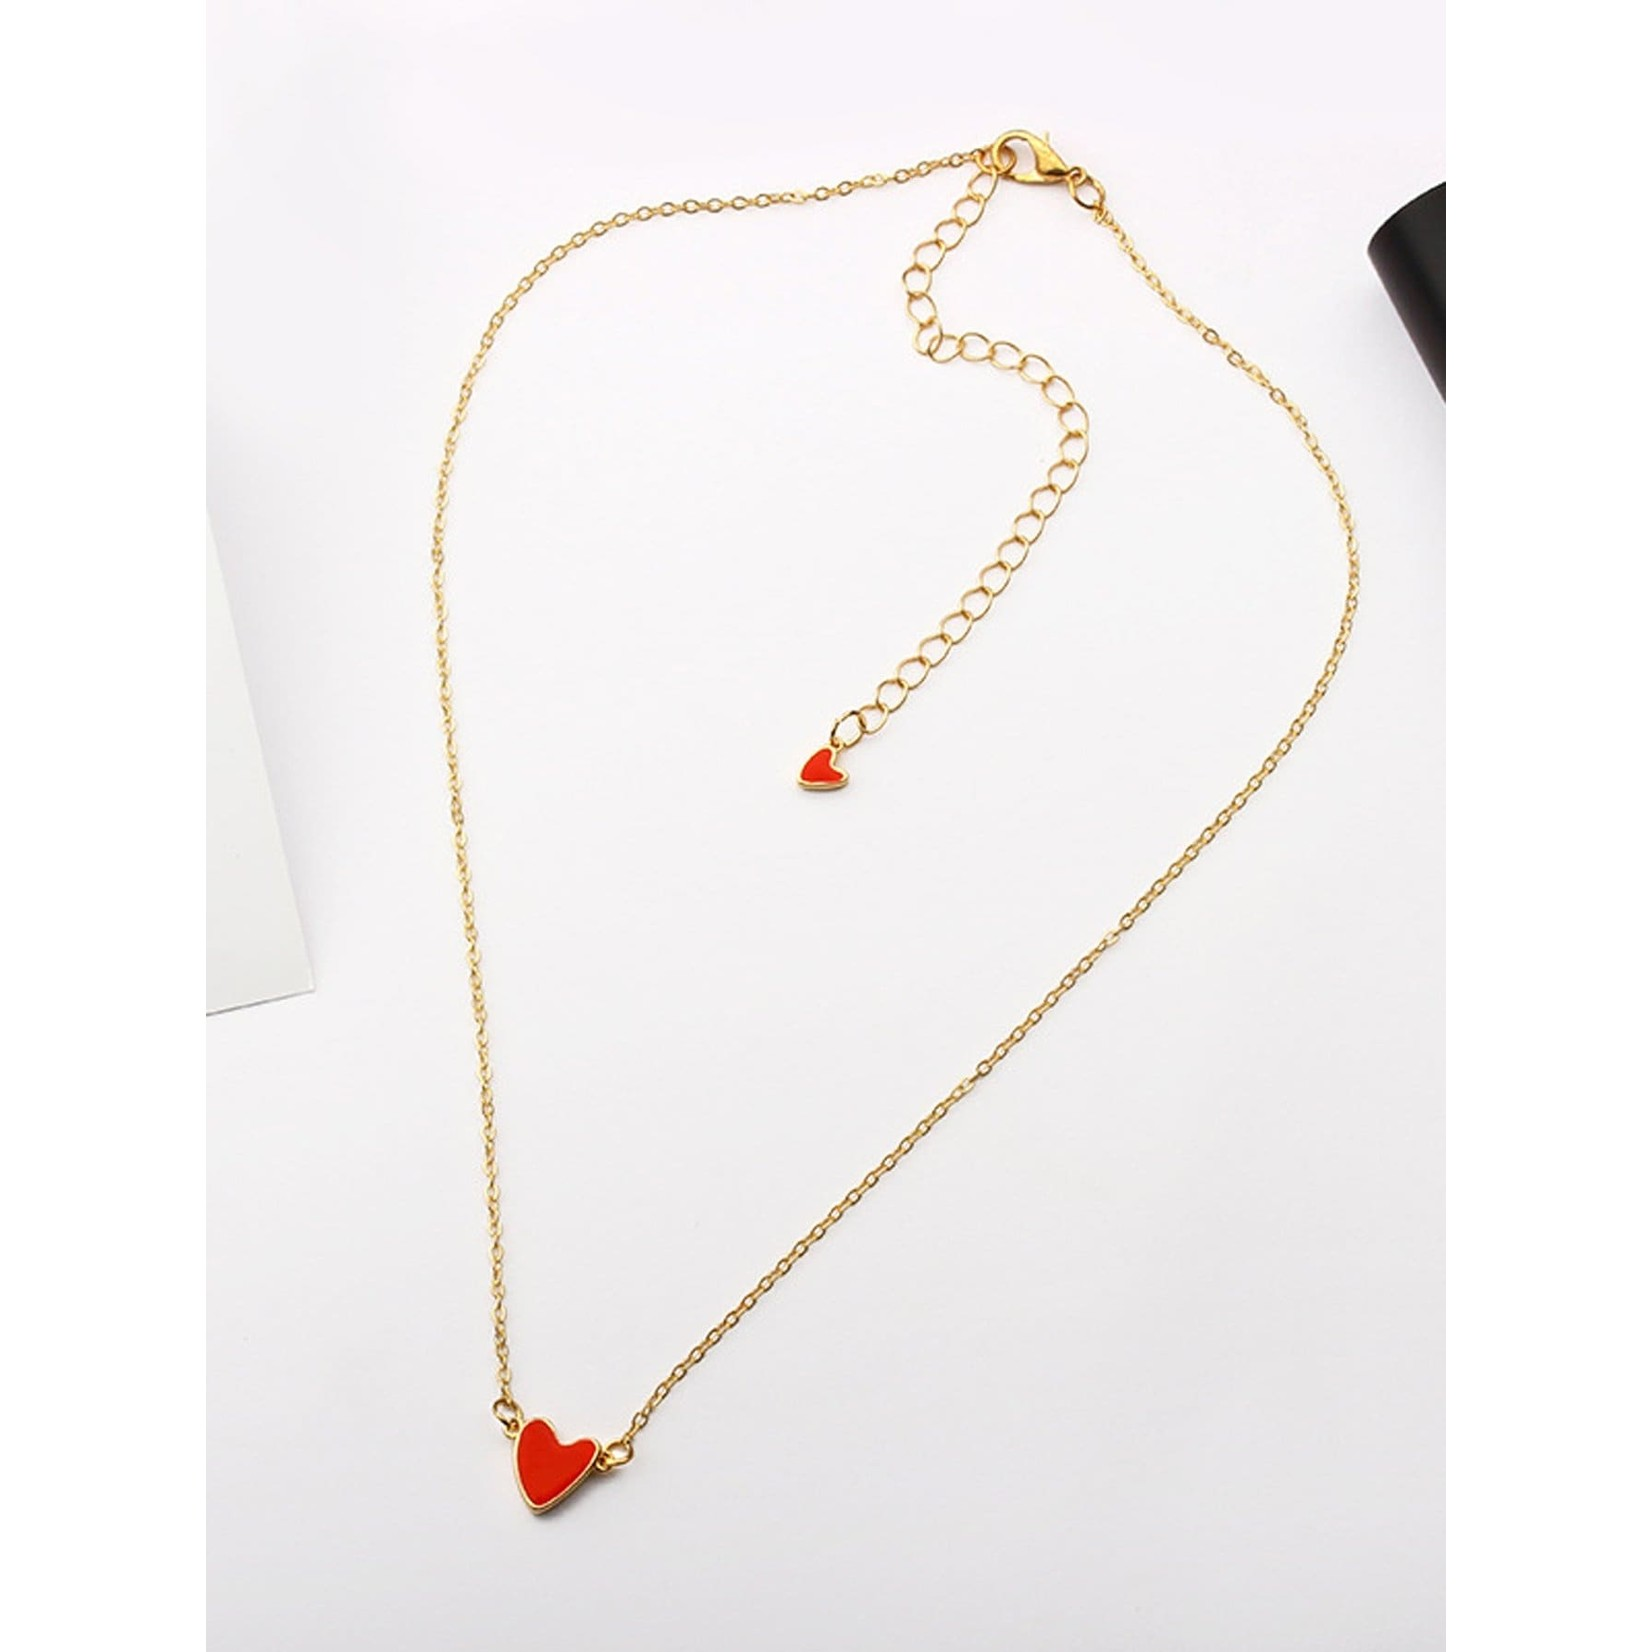 Necklace - Tiny Red Heart